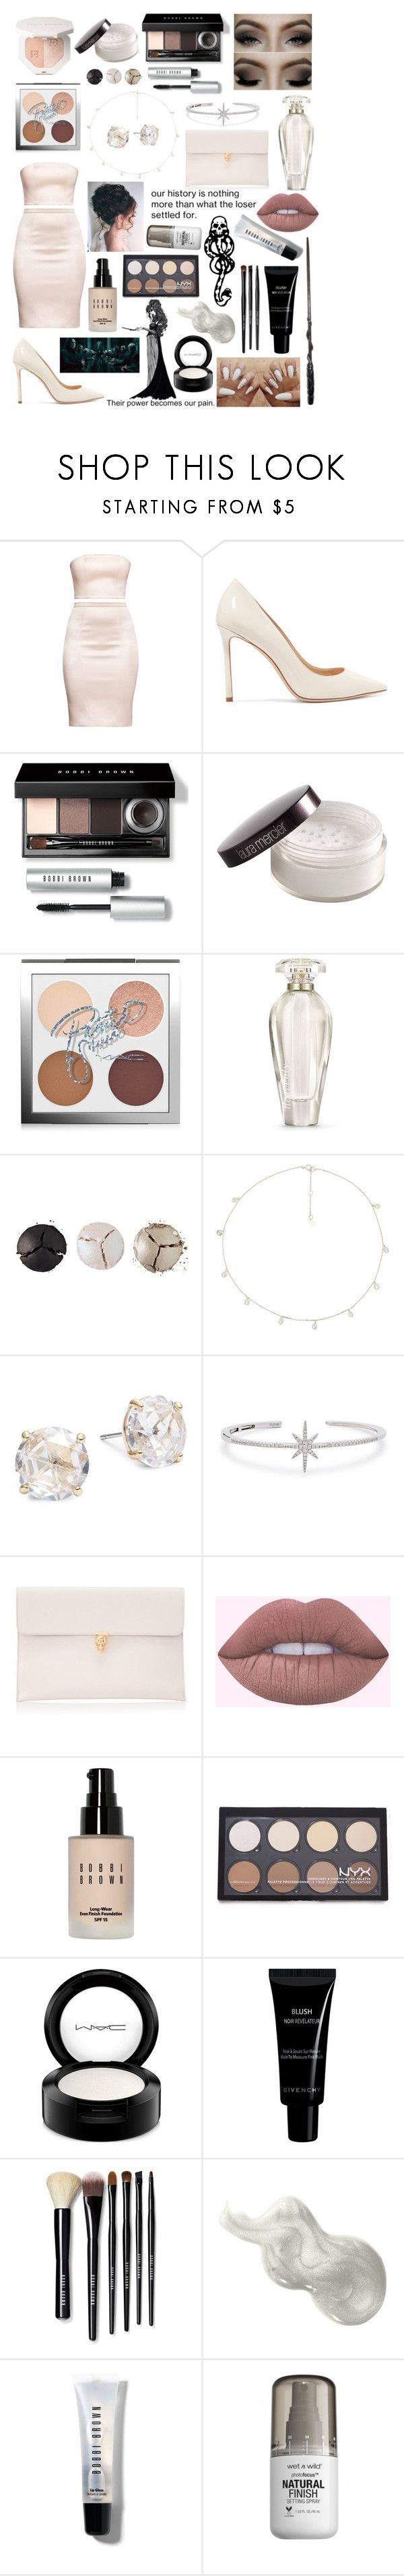 """unknowingly"" by aurorose ❤ liked on Polyvore featuring Jimmy Choo, Bobbi Brown Cosmetics, Laura Mercier, MAC Cosmetics, Victoria's Secret, Pat McGrath, The M Jewelers NY, Kate Spade, APM Monaco and Alexander McQueen"